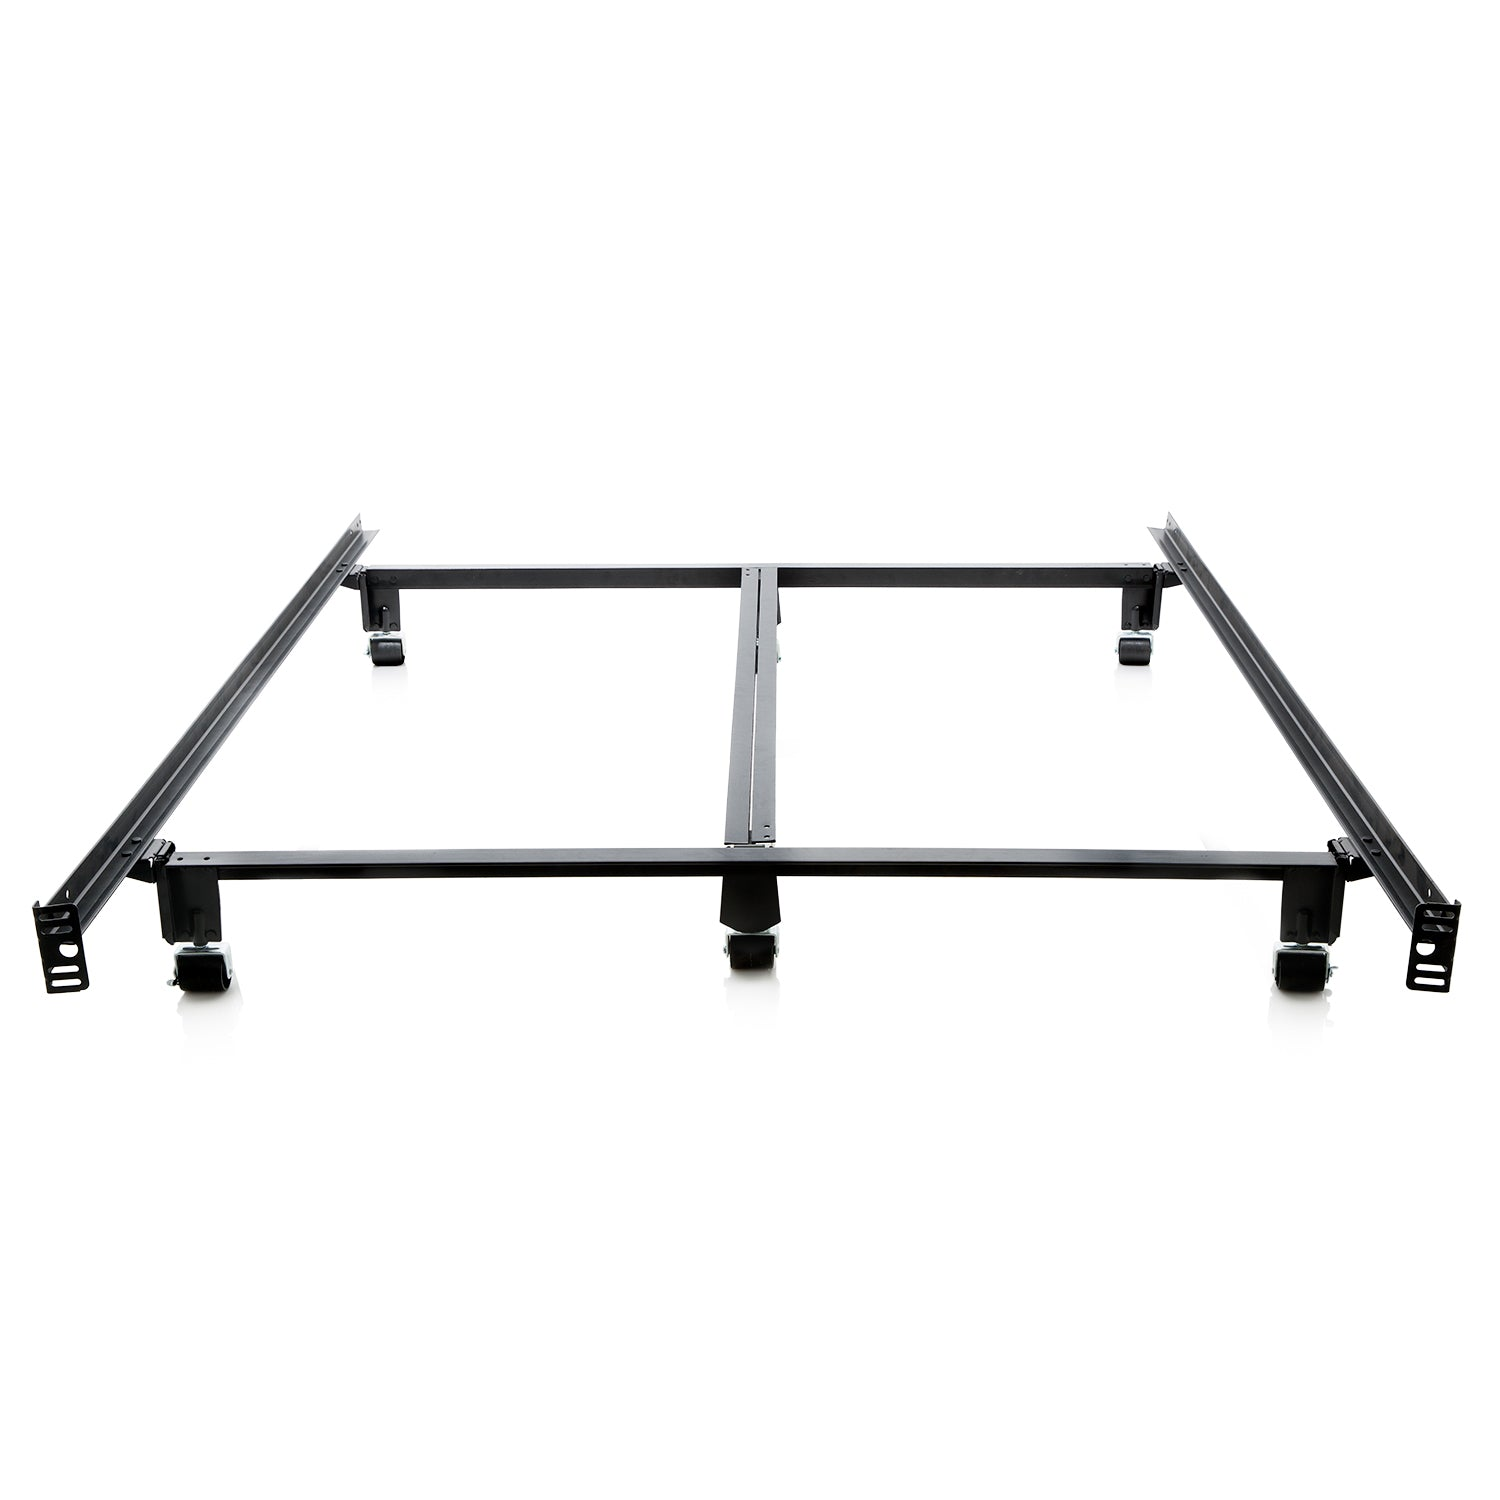 Steelock Bed Frame